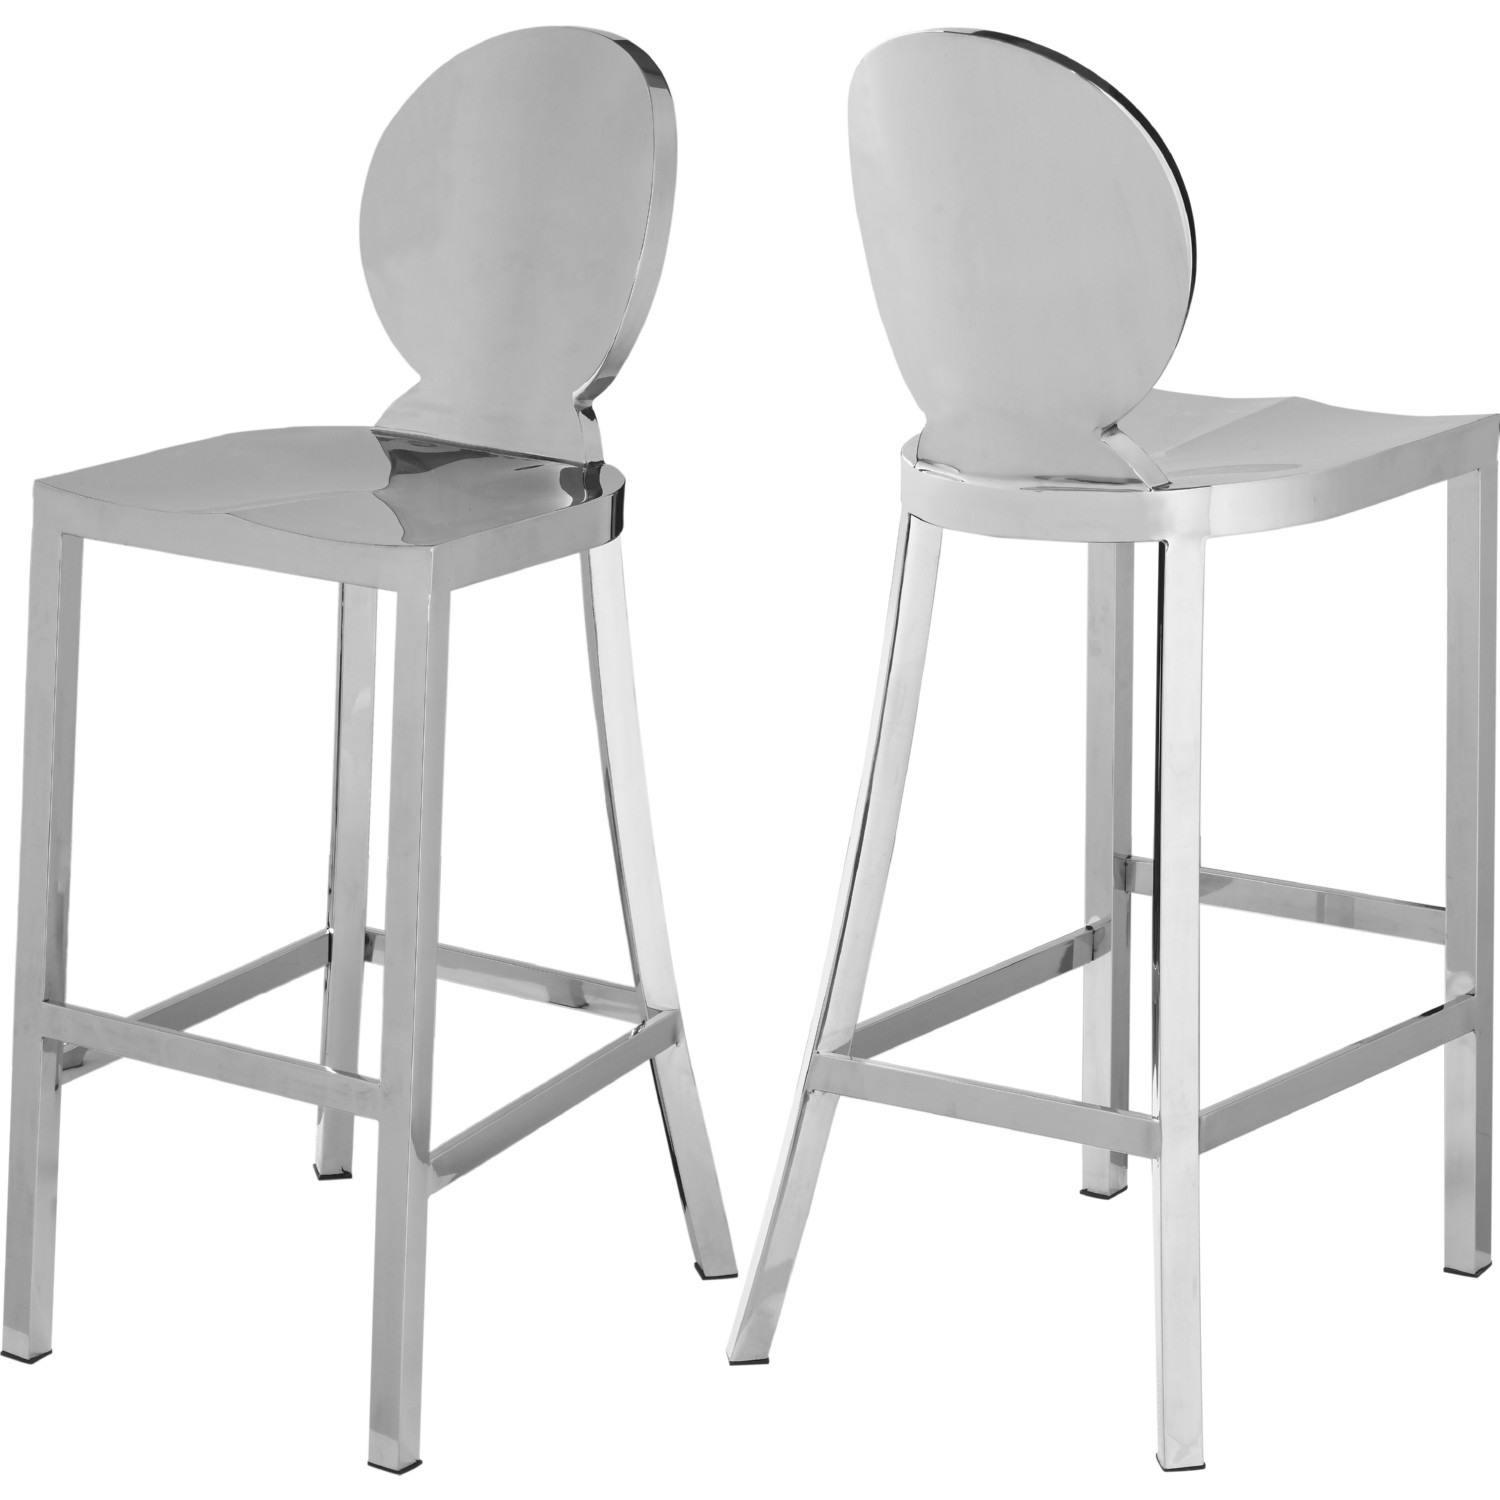 Superb Maddox Bar Stool In Chrome Stainless Steel By Meridian Furniture Machost Co Dining Chair Design Ideas Machostcouk